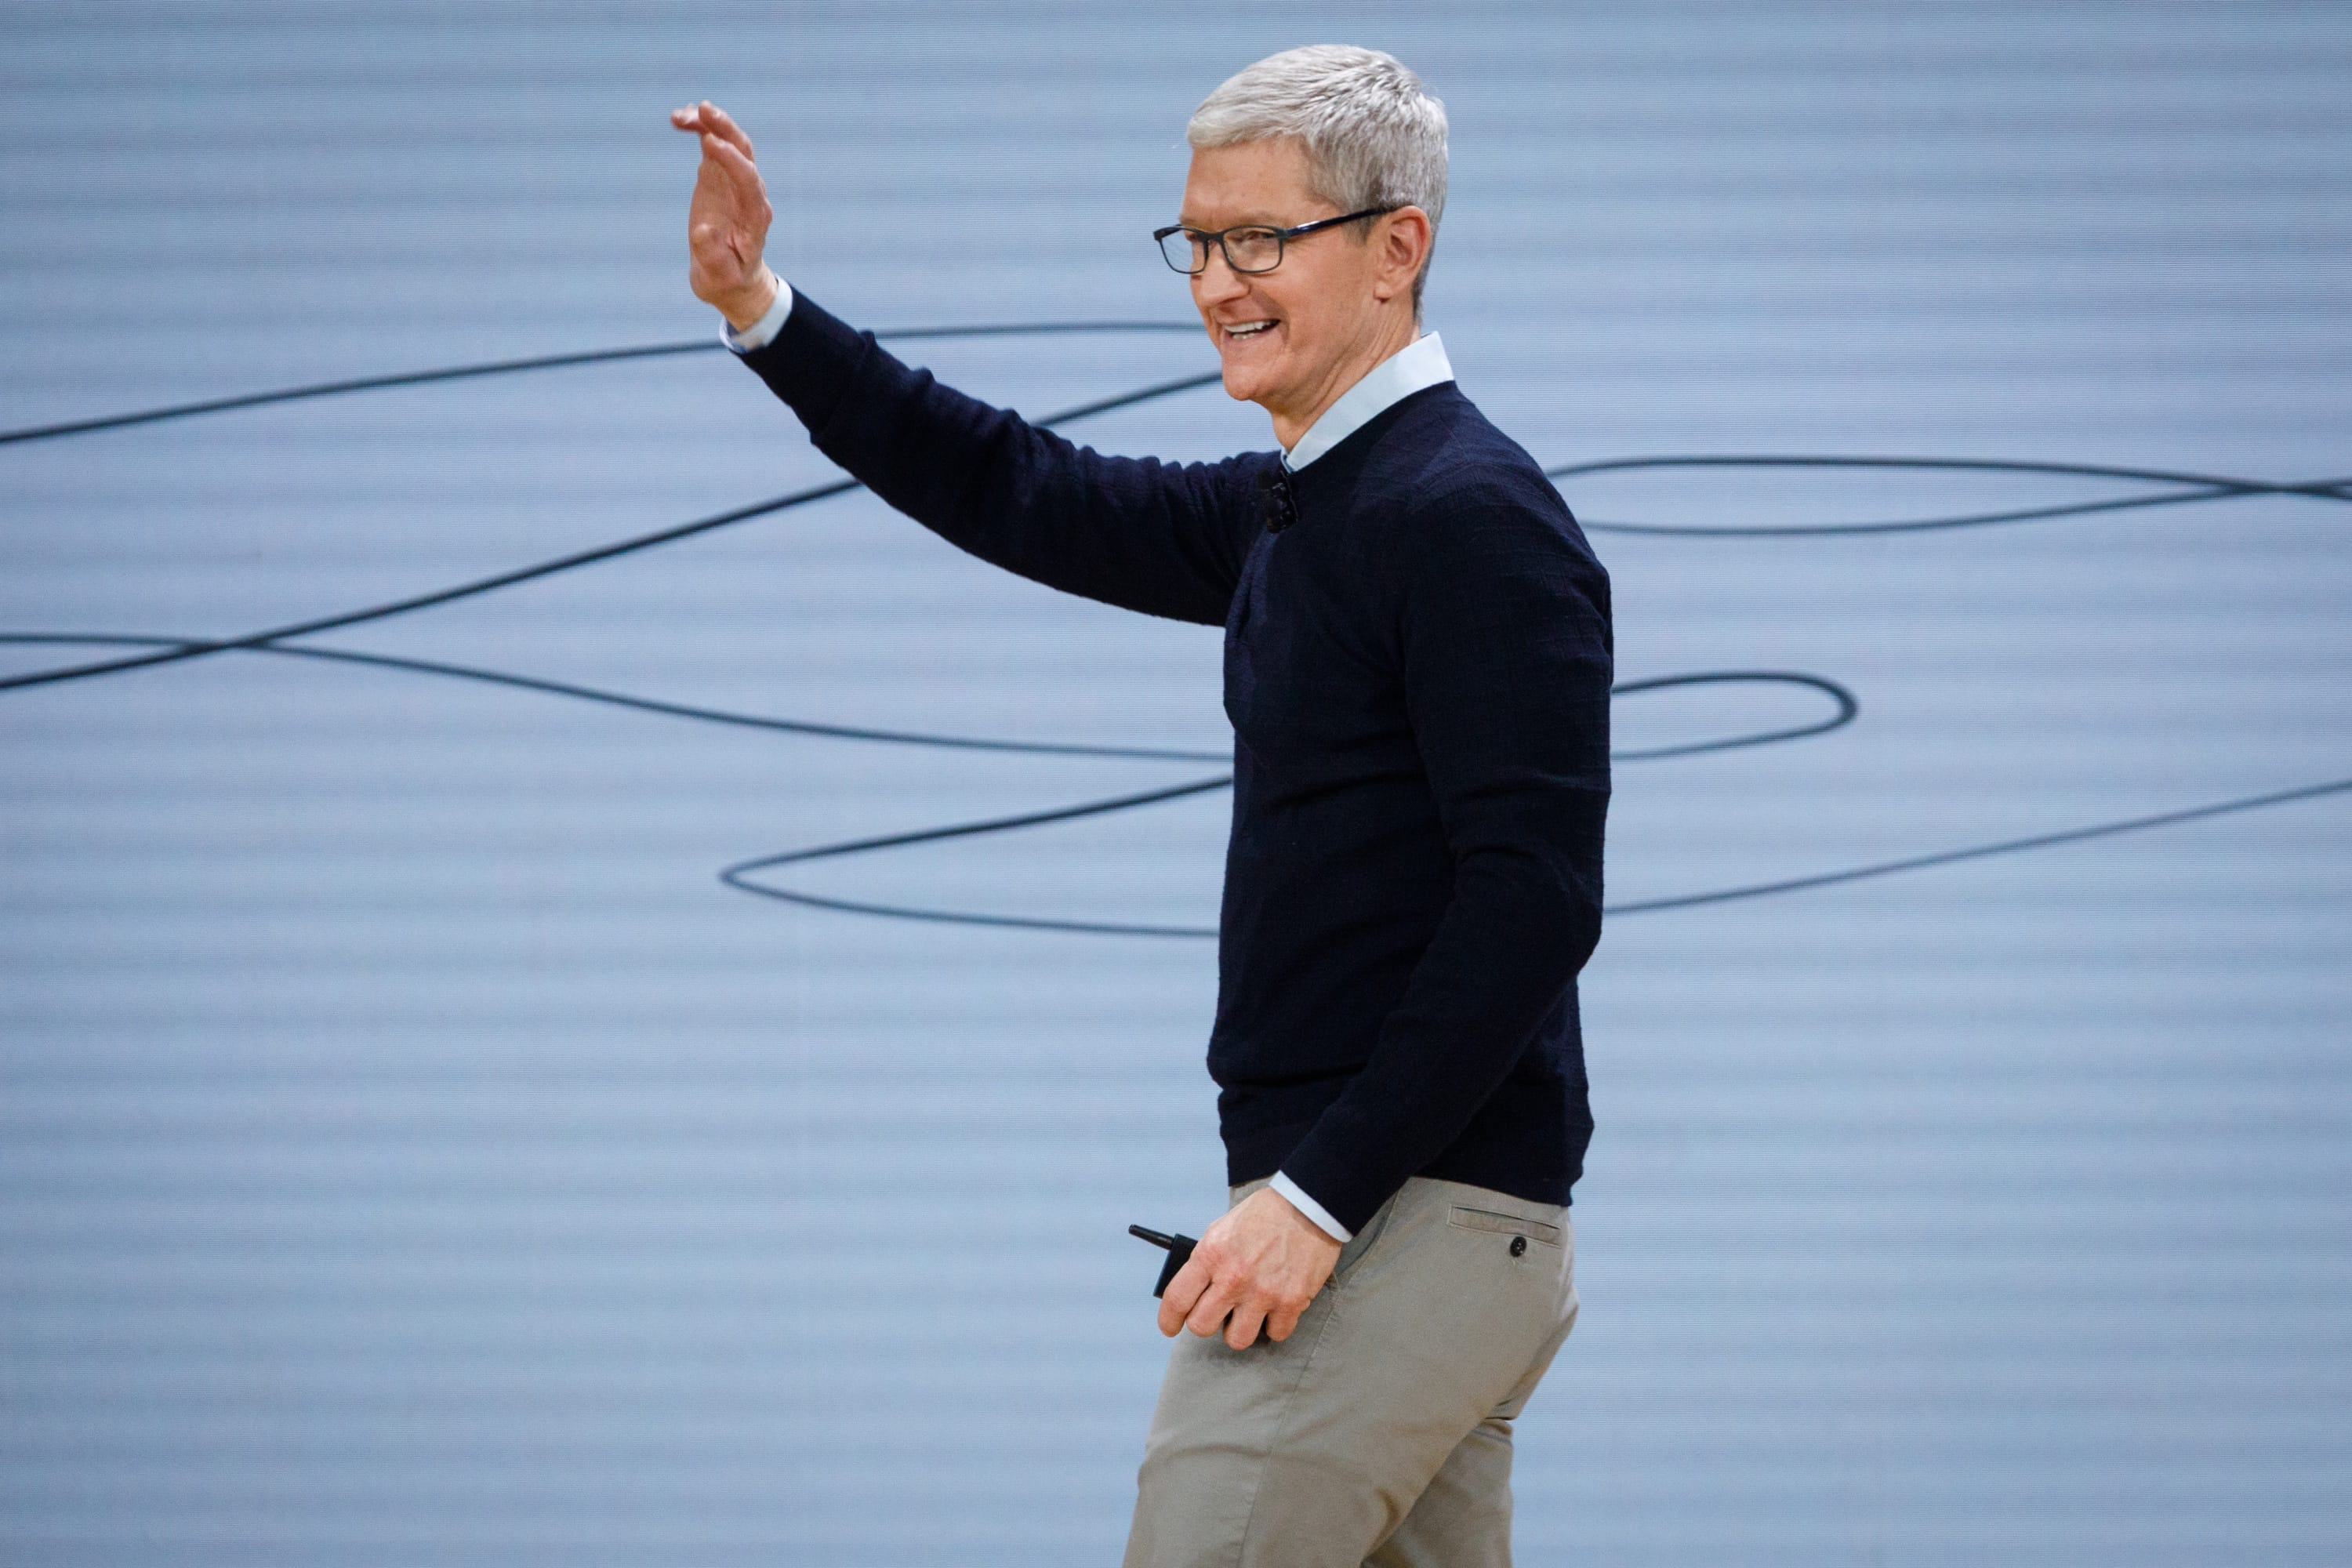 Image of Tim Cook waving.